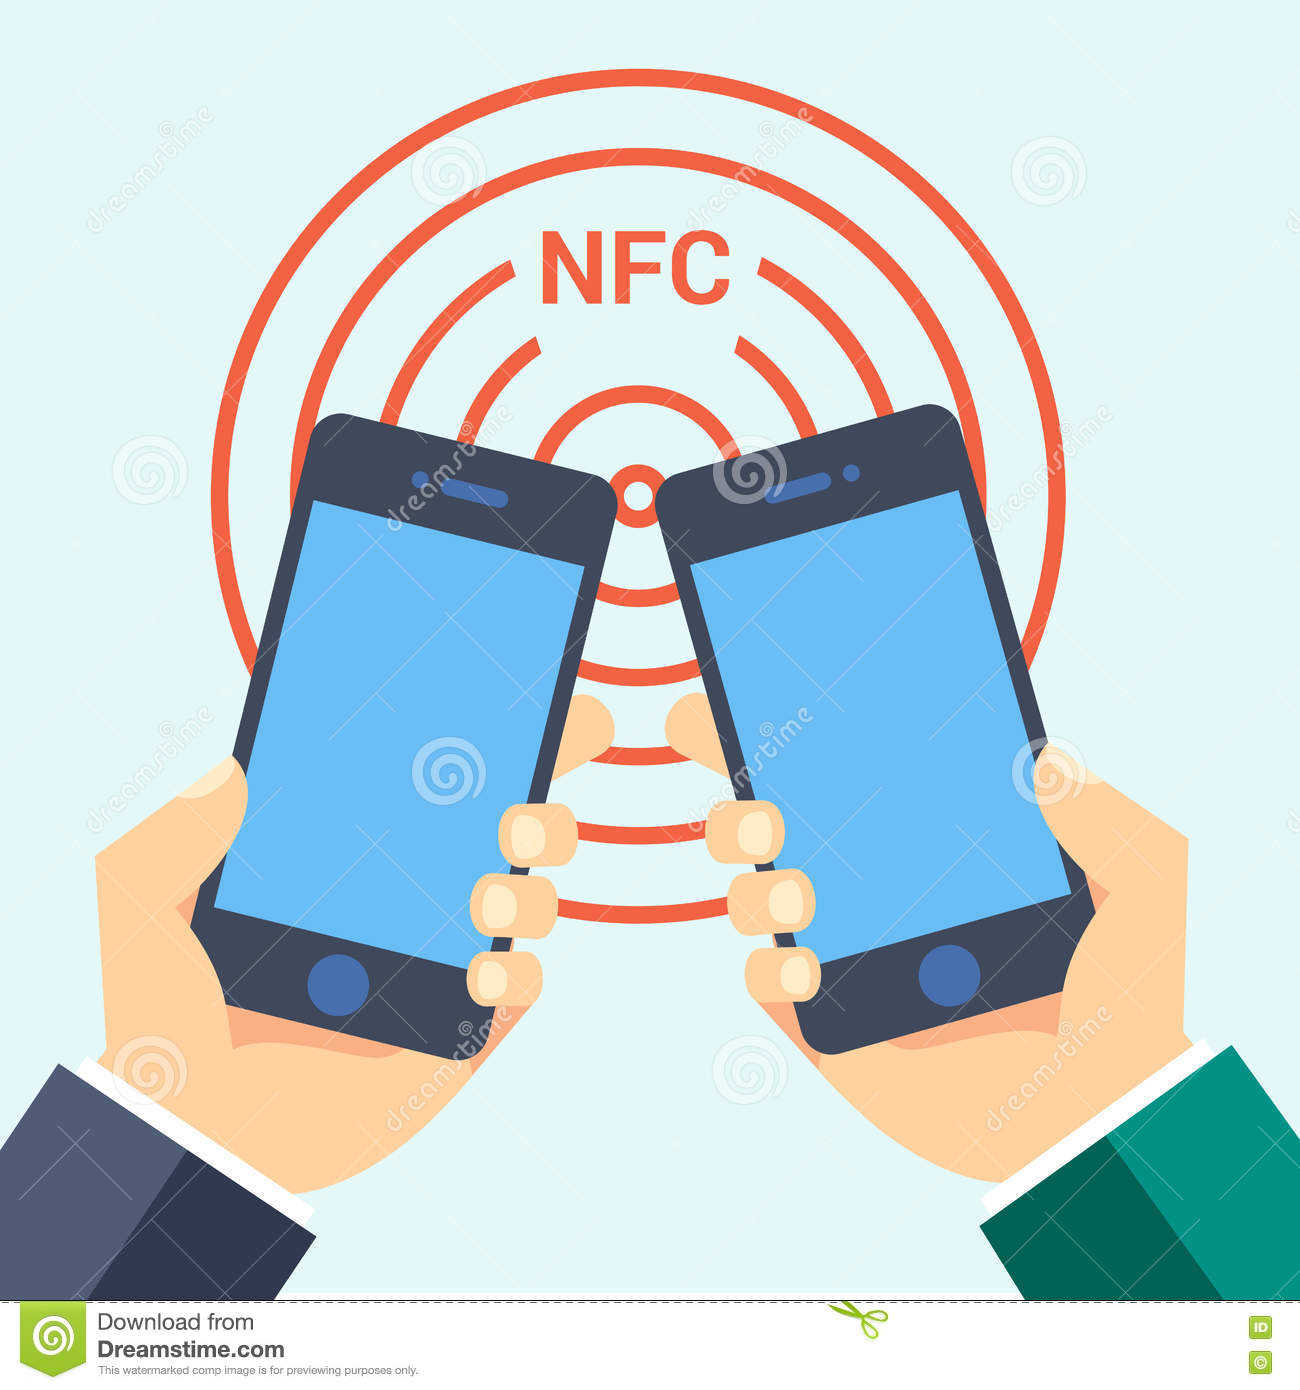 Nfc smart phone technology business card icon flat web sign symbol nfc smart phone technology business card icon flat web sign symbol logo label magicingreecefo Images